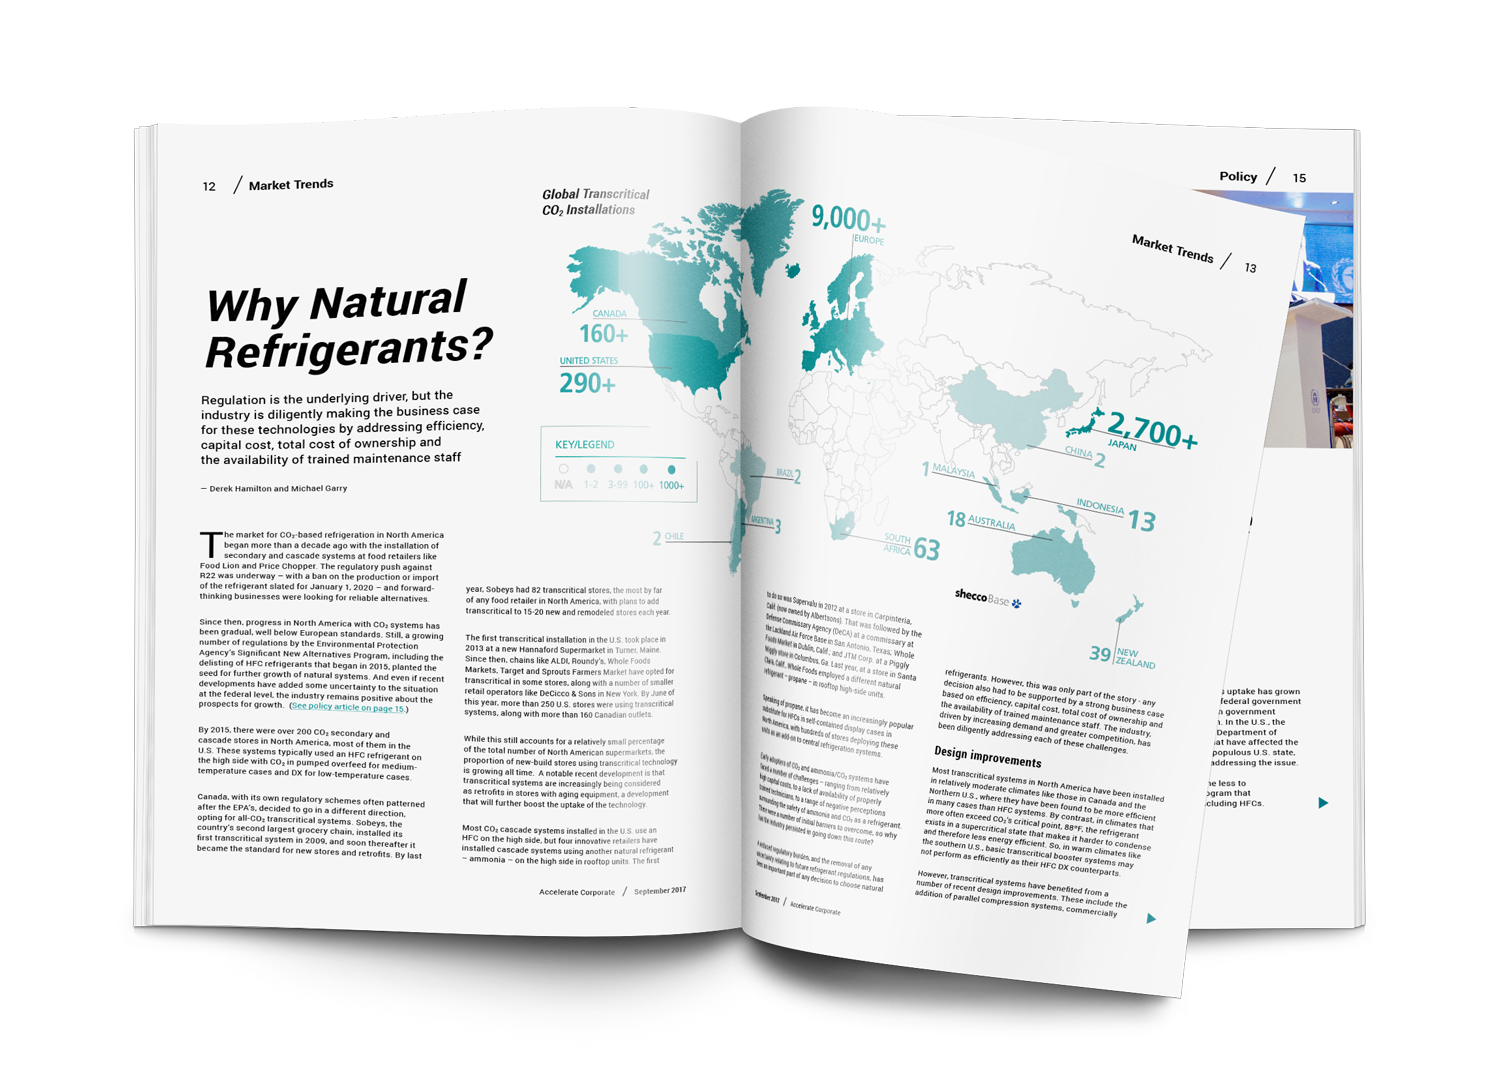 Why Natural Refrigerants